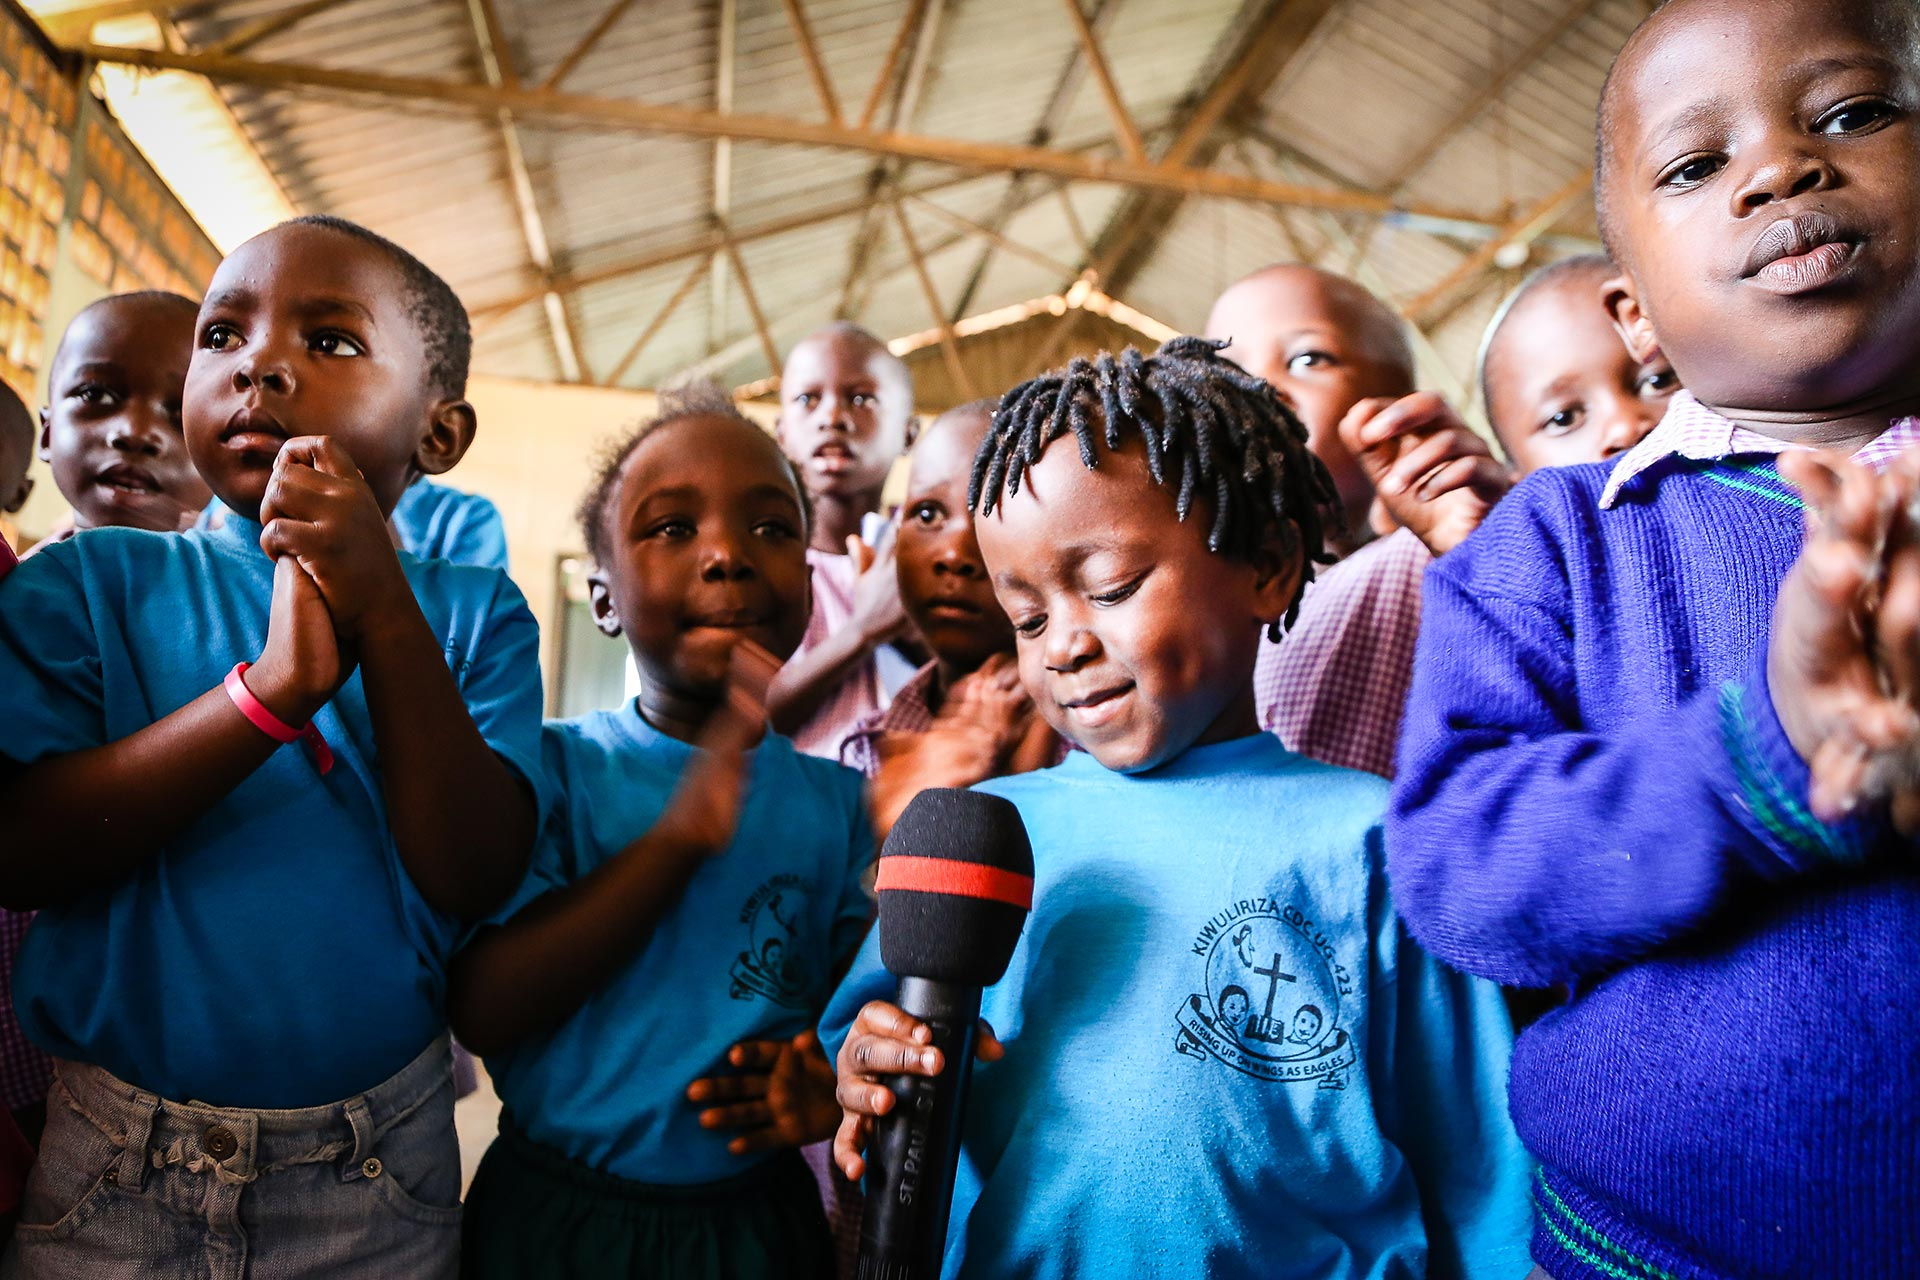 A child looks down at a microphone as other children crowd around.